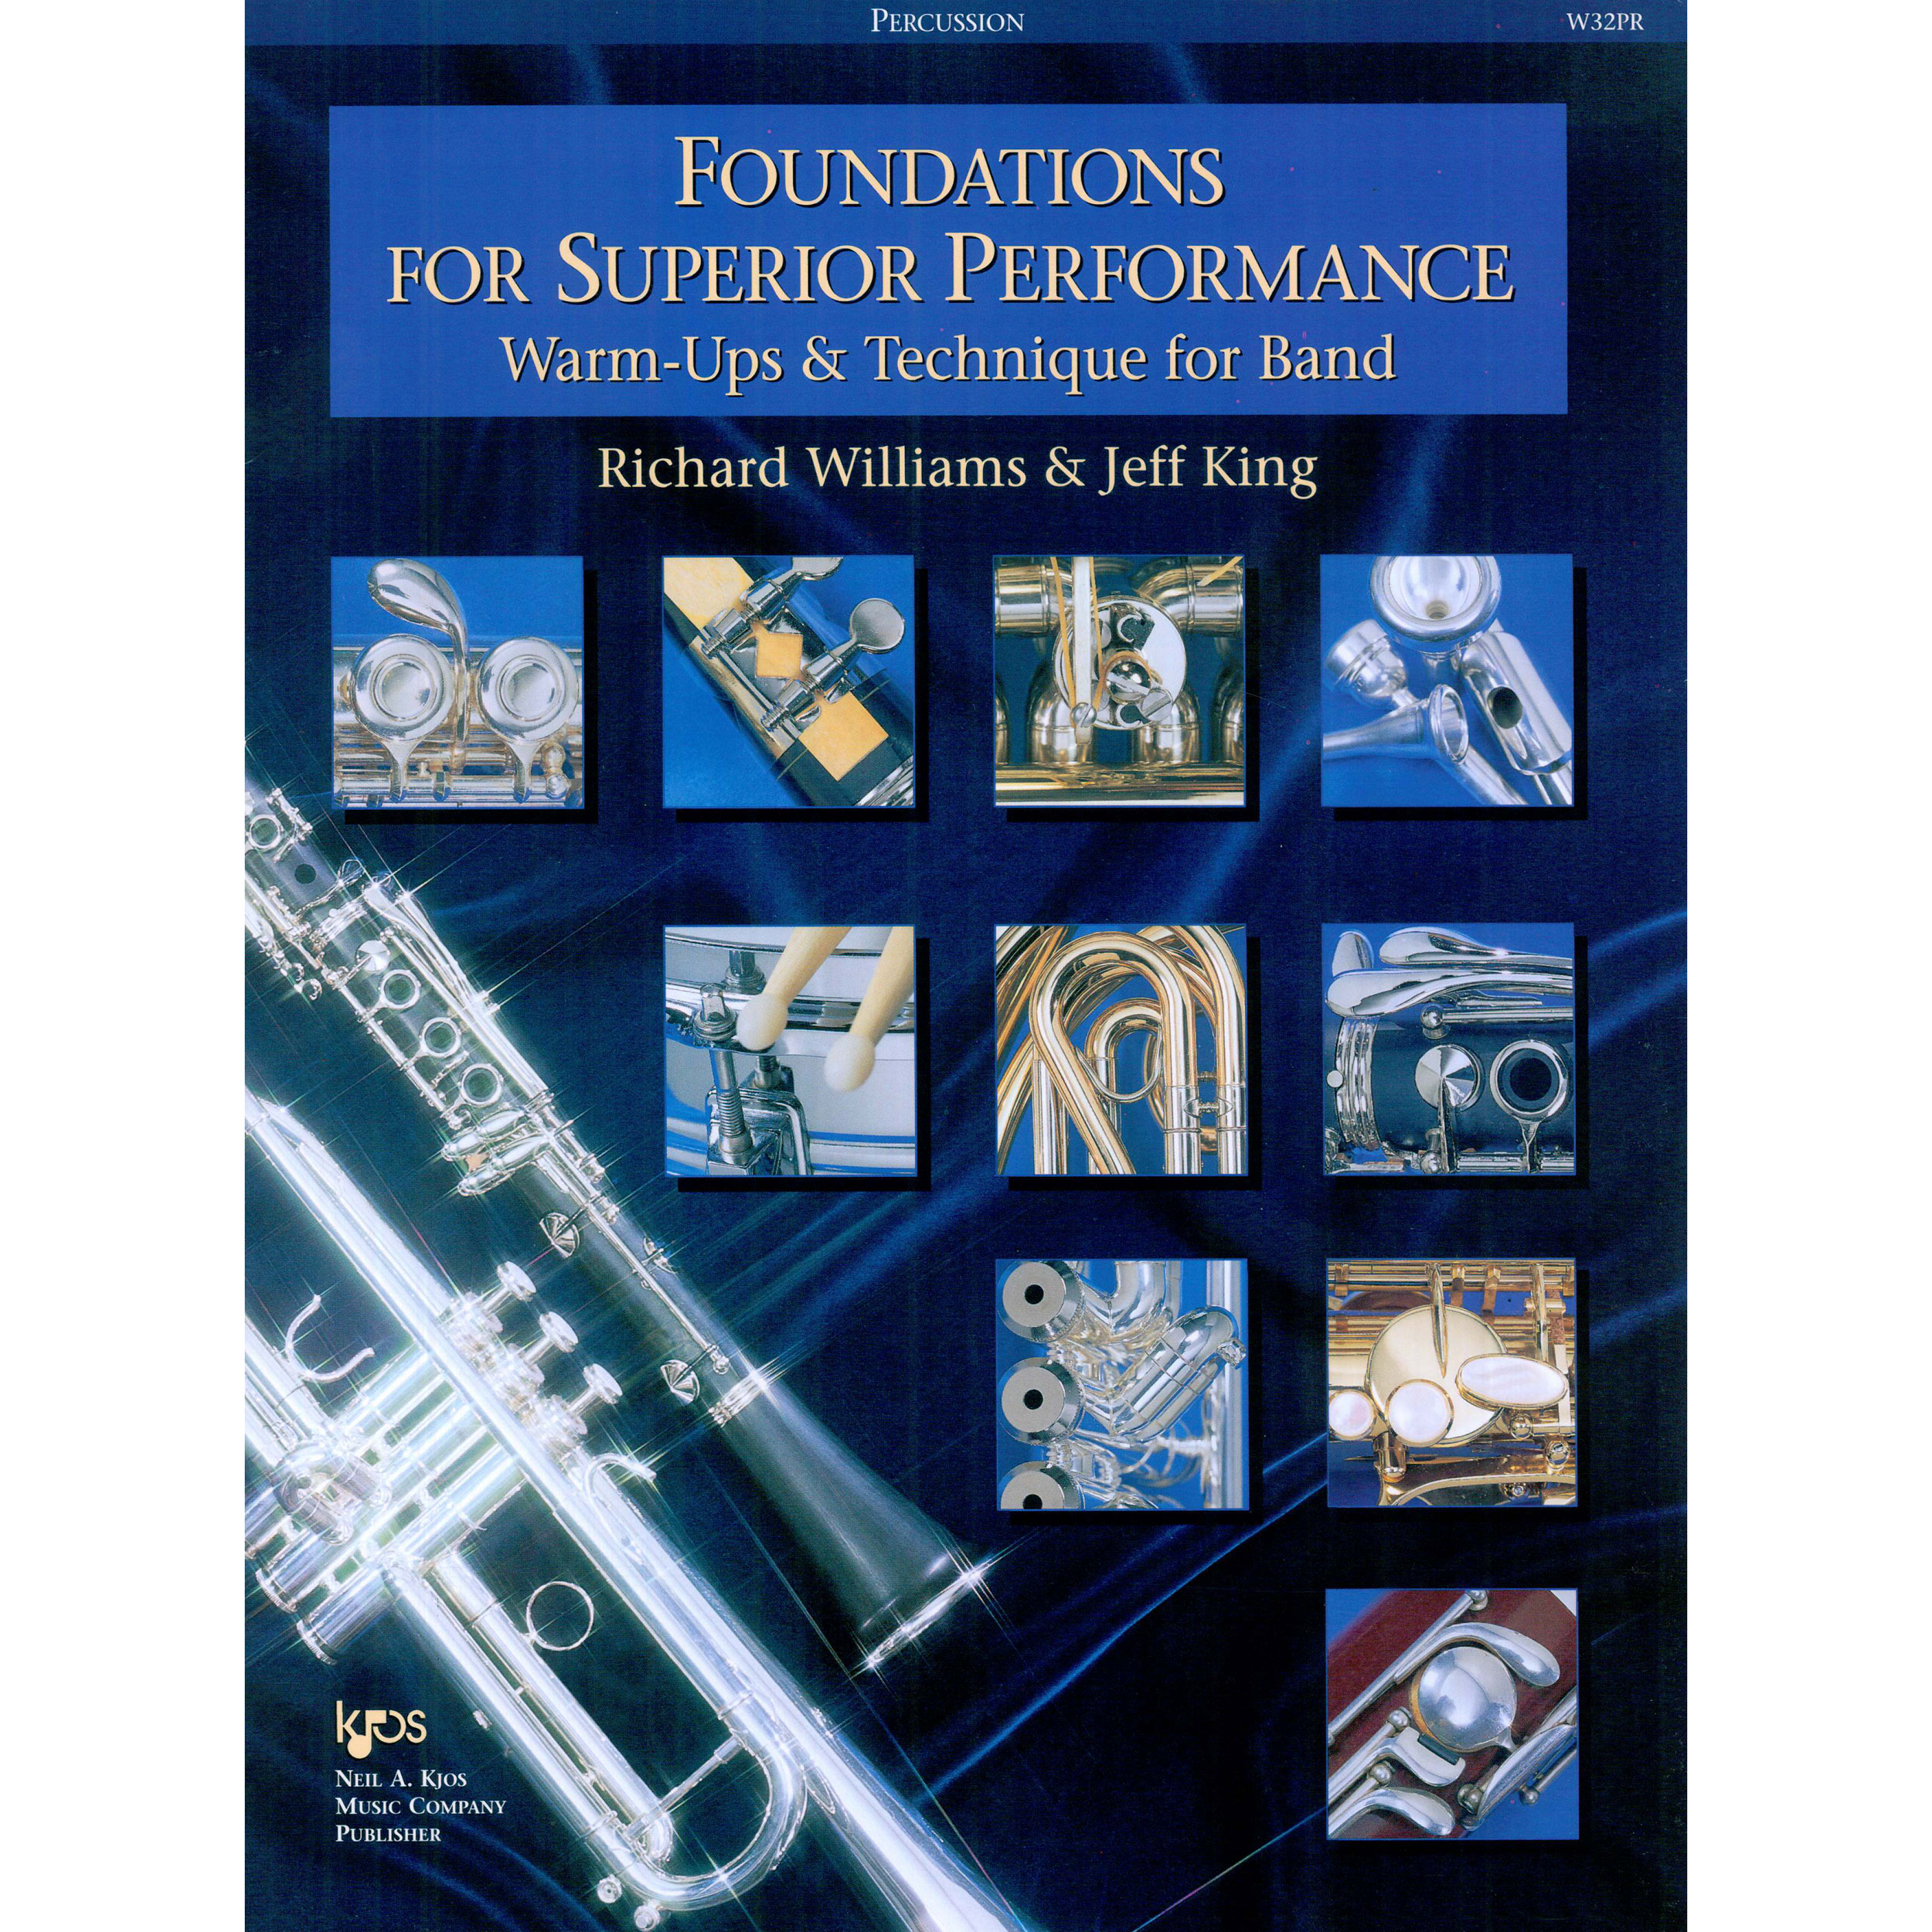 Foundations for Superior Performance - Percussion by Richard Williams & Jeff King